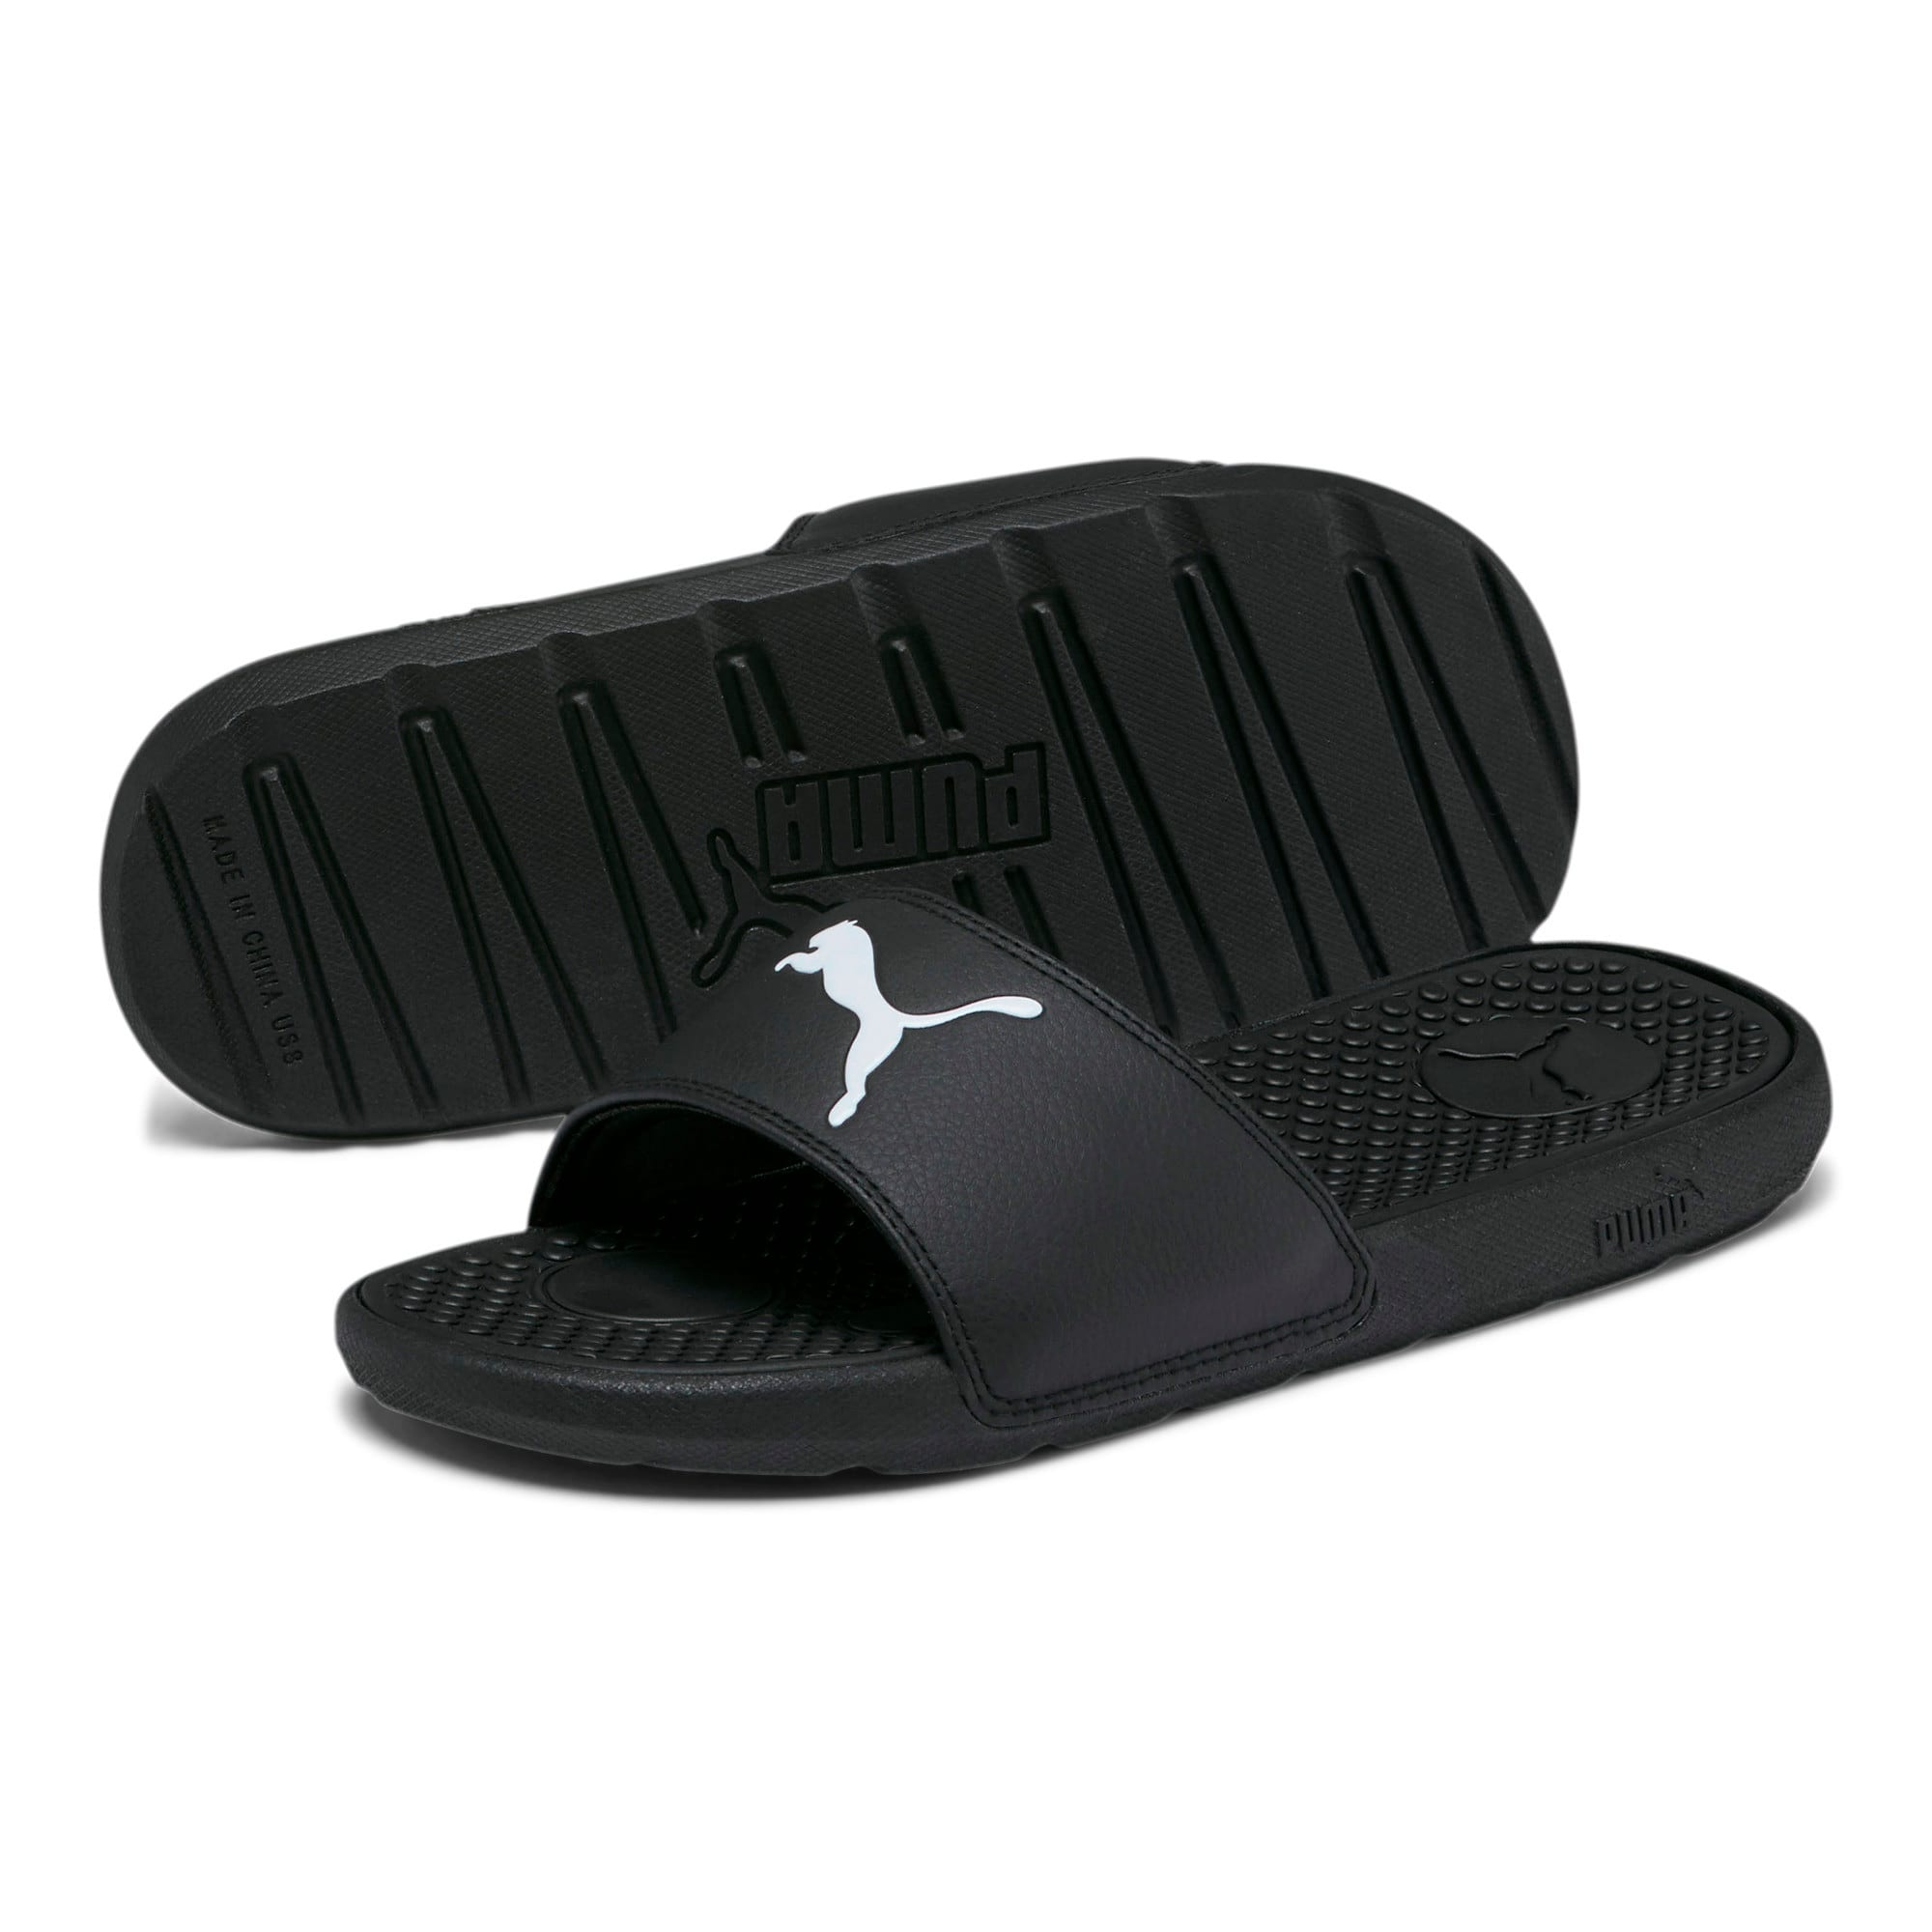 Thumbnail 2 of Cool Cat Sport Women's Slides, Puma Black-Puma White, medium